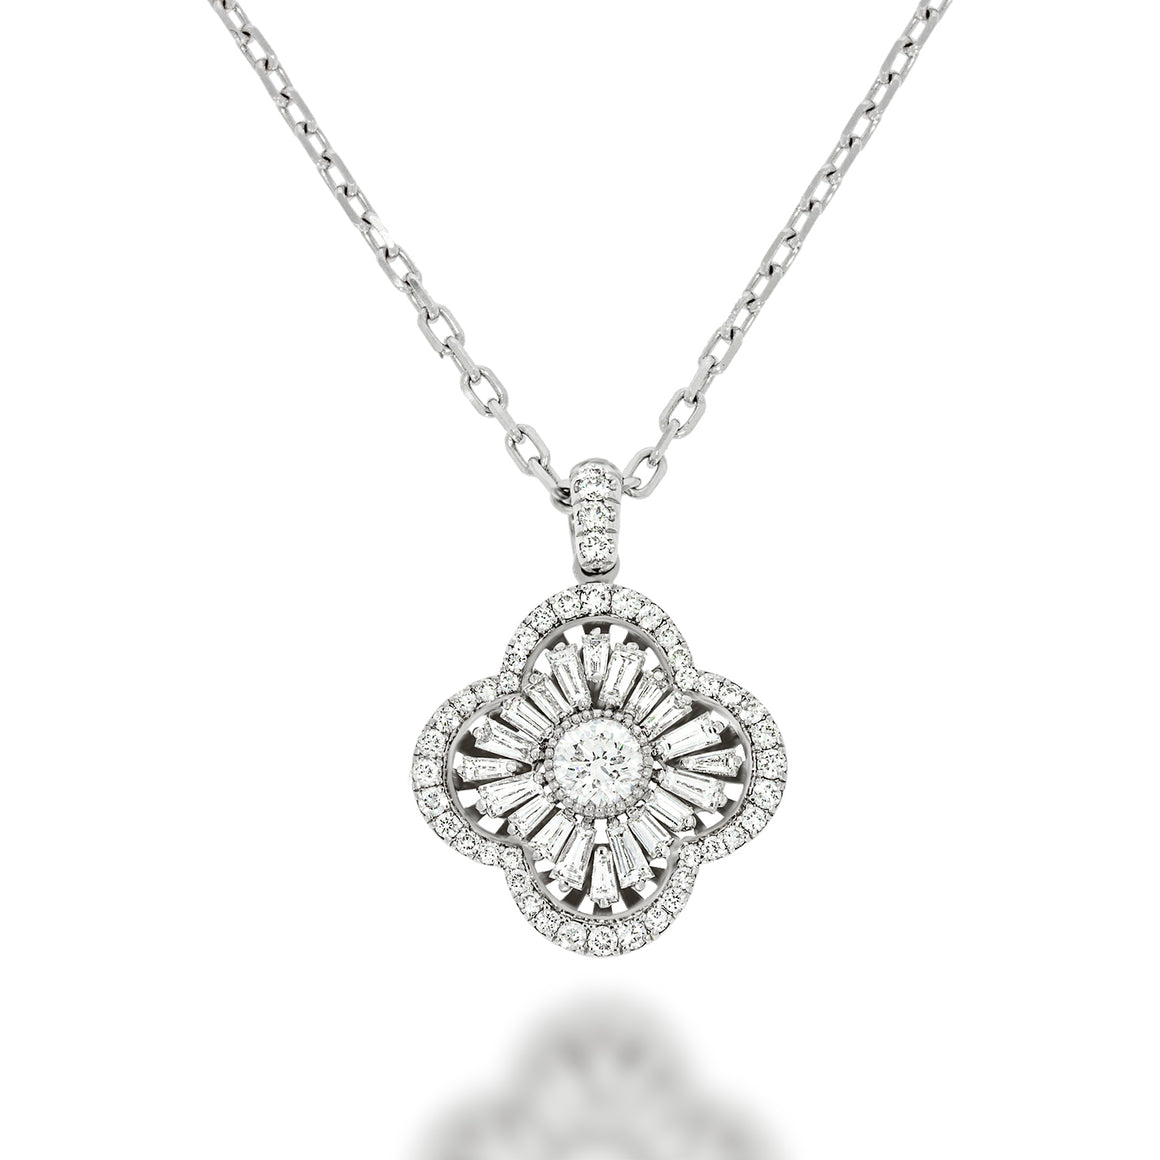 luxurious pendant Victorian Style. Clover shape pendant with a central big diamond and 64  luxurious and special diamonds. prefect  gift.